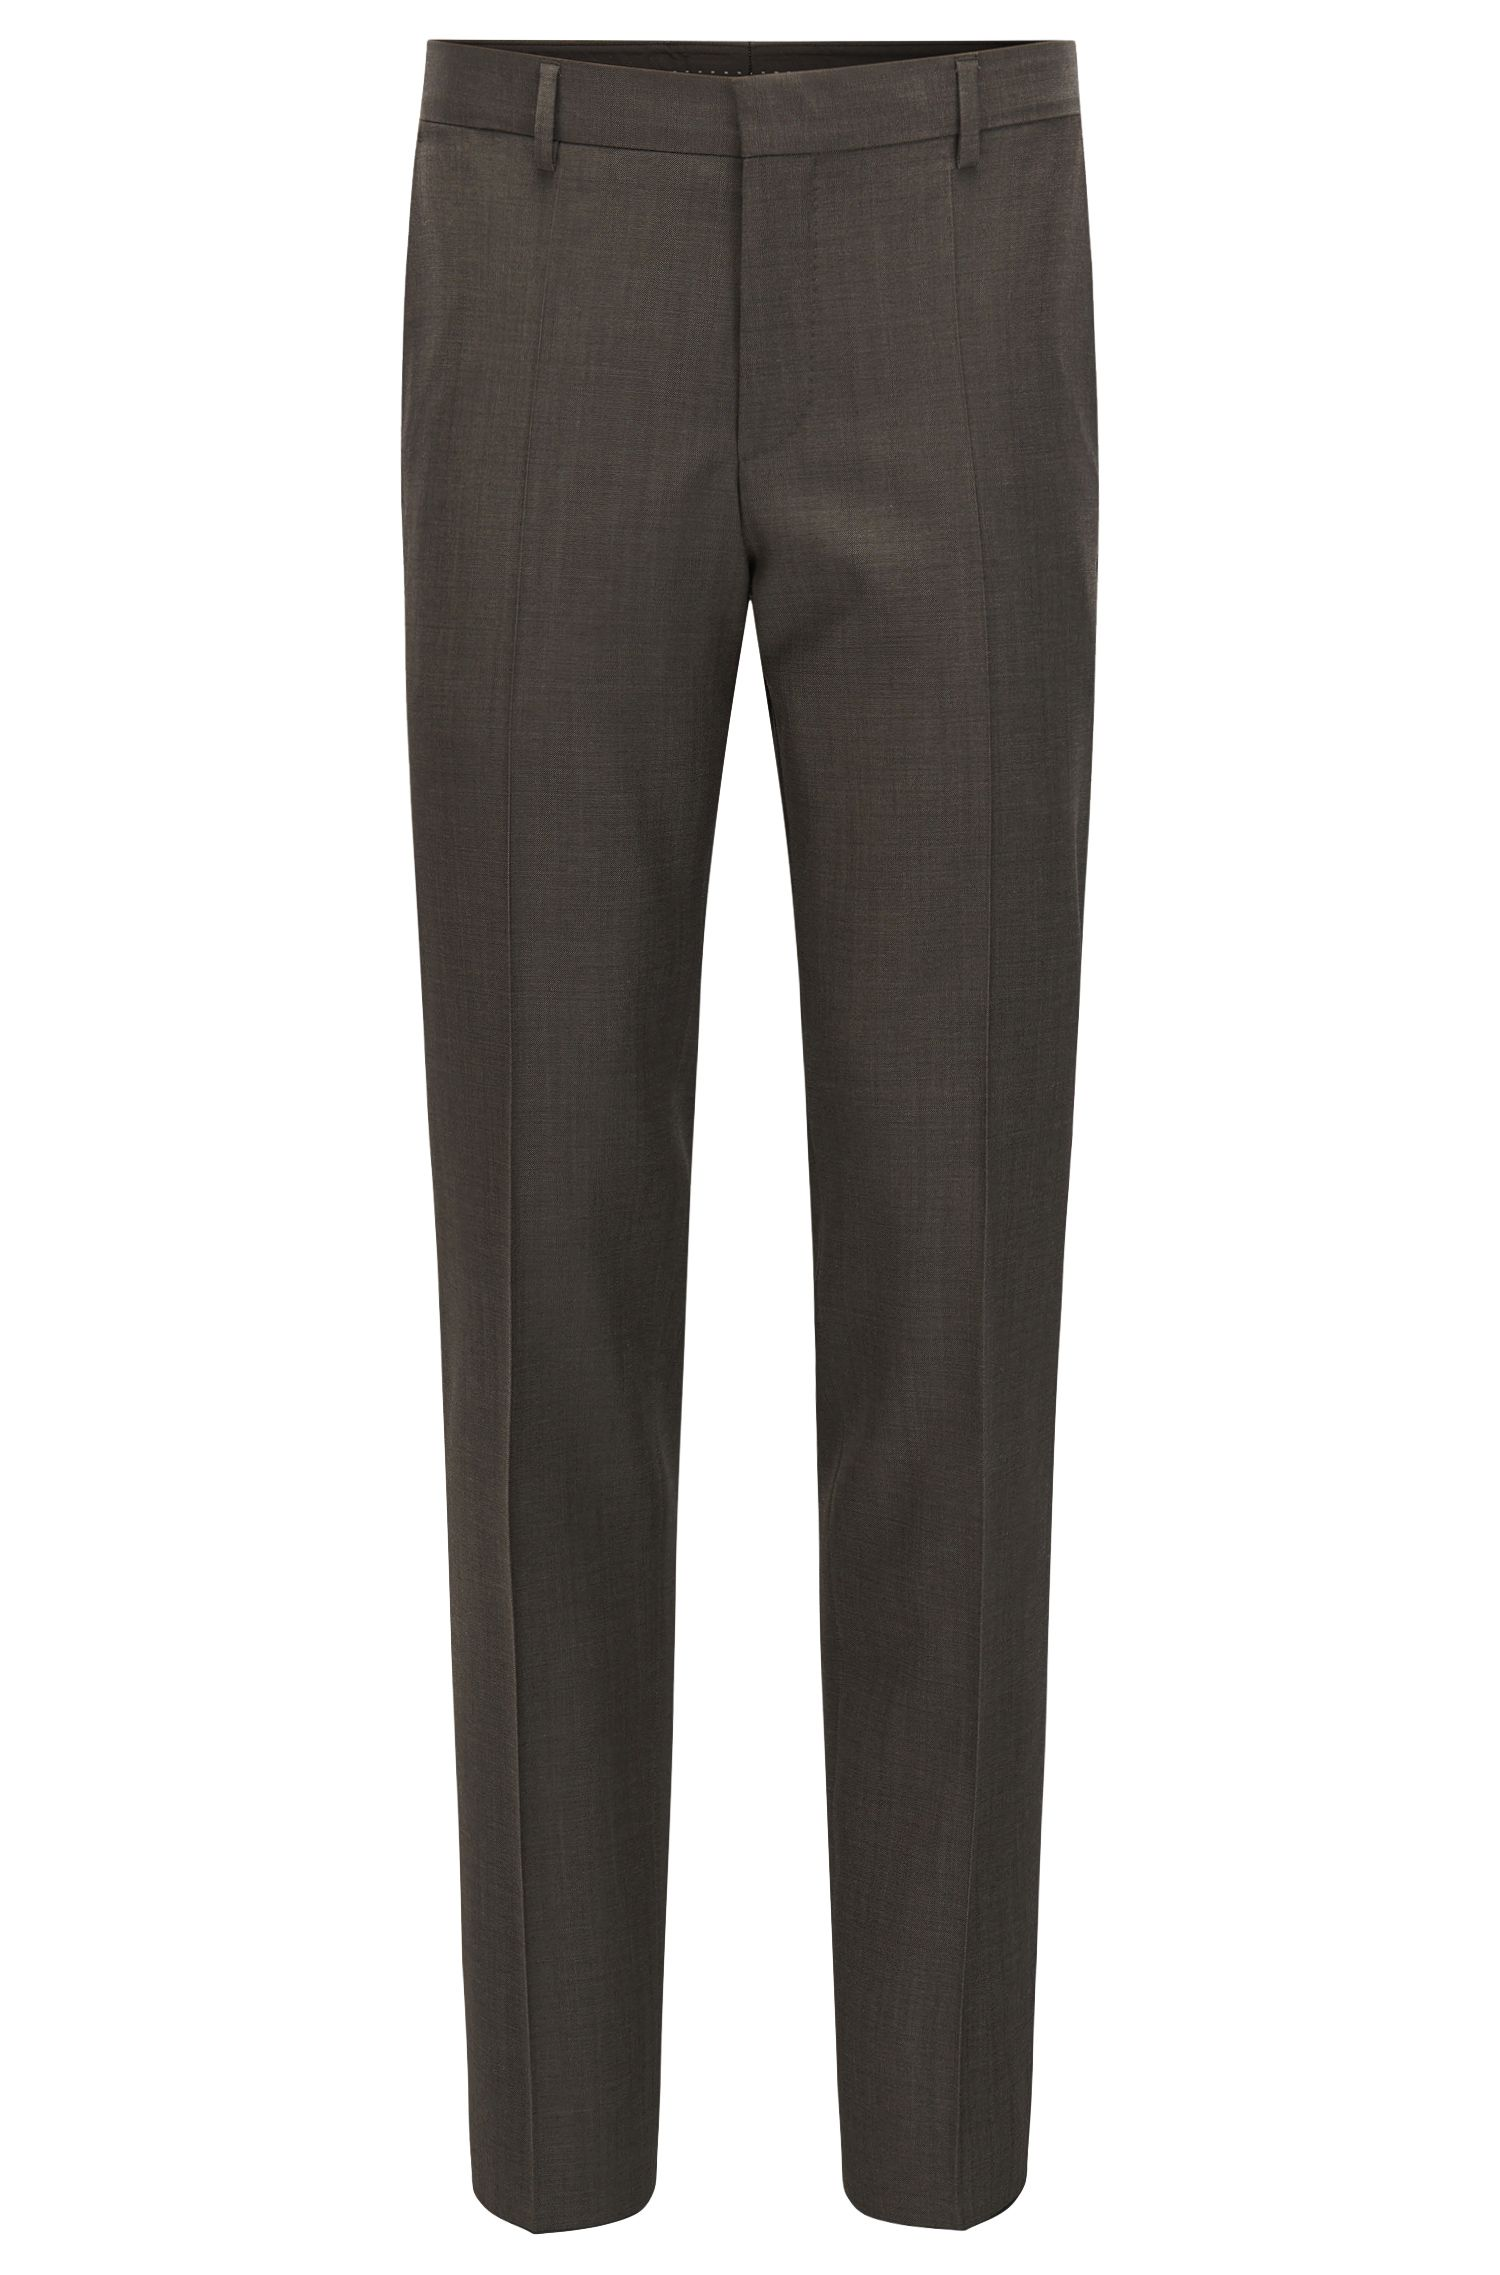 Virgin Wool Dress Pants, Slim Fit | Balte